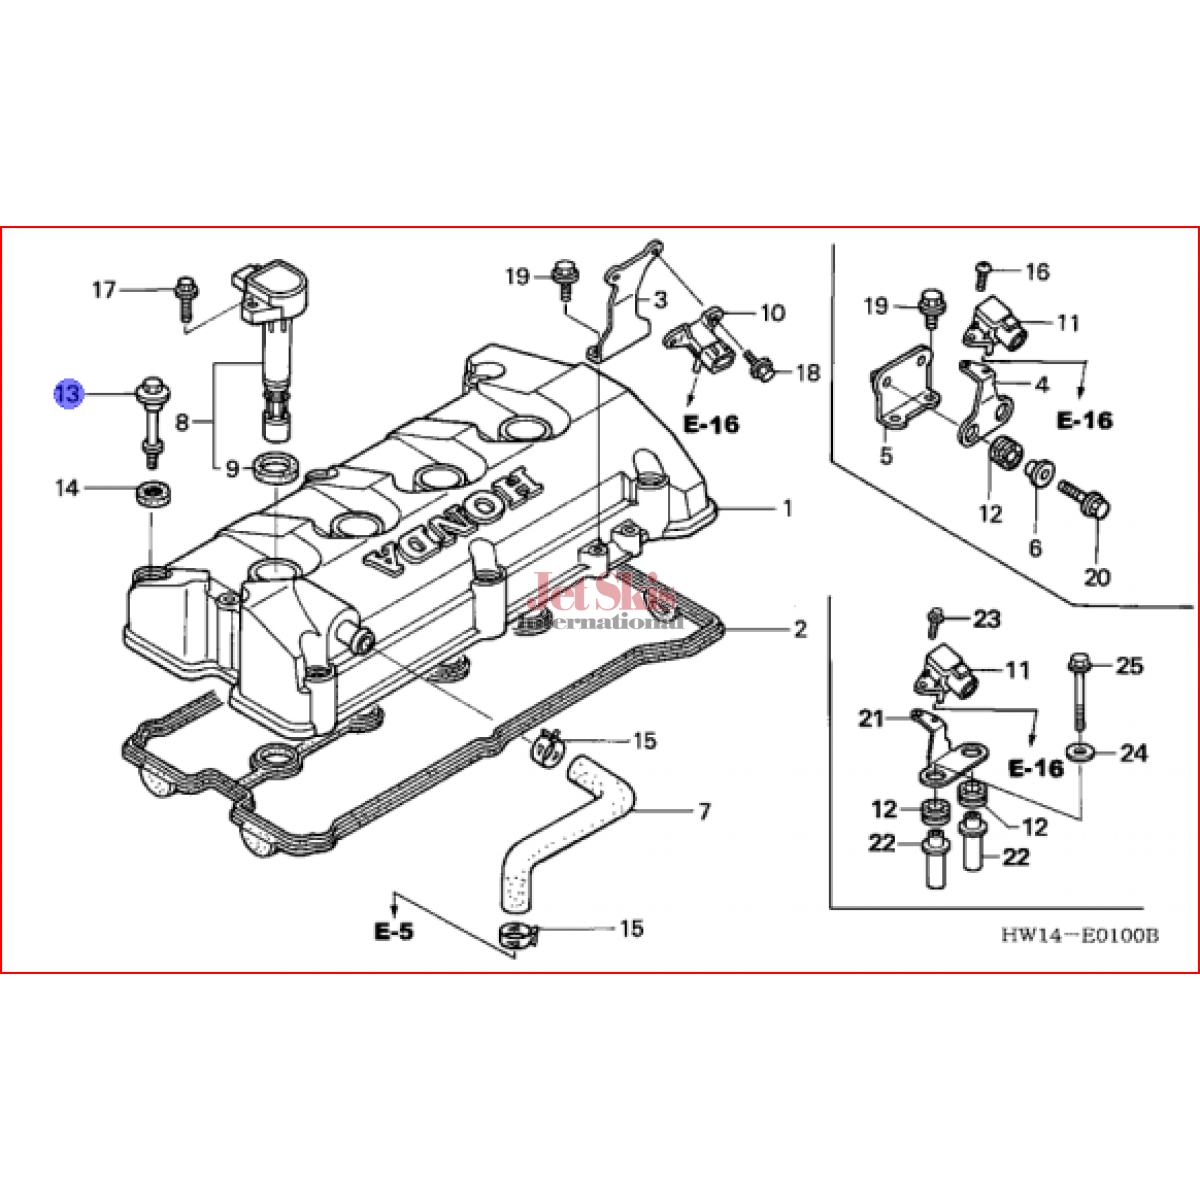 wire diagram 2003 honda aquatrax  honda  auto wiring diagram